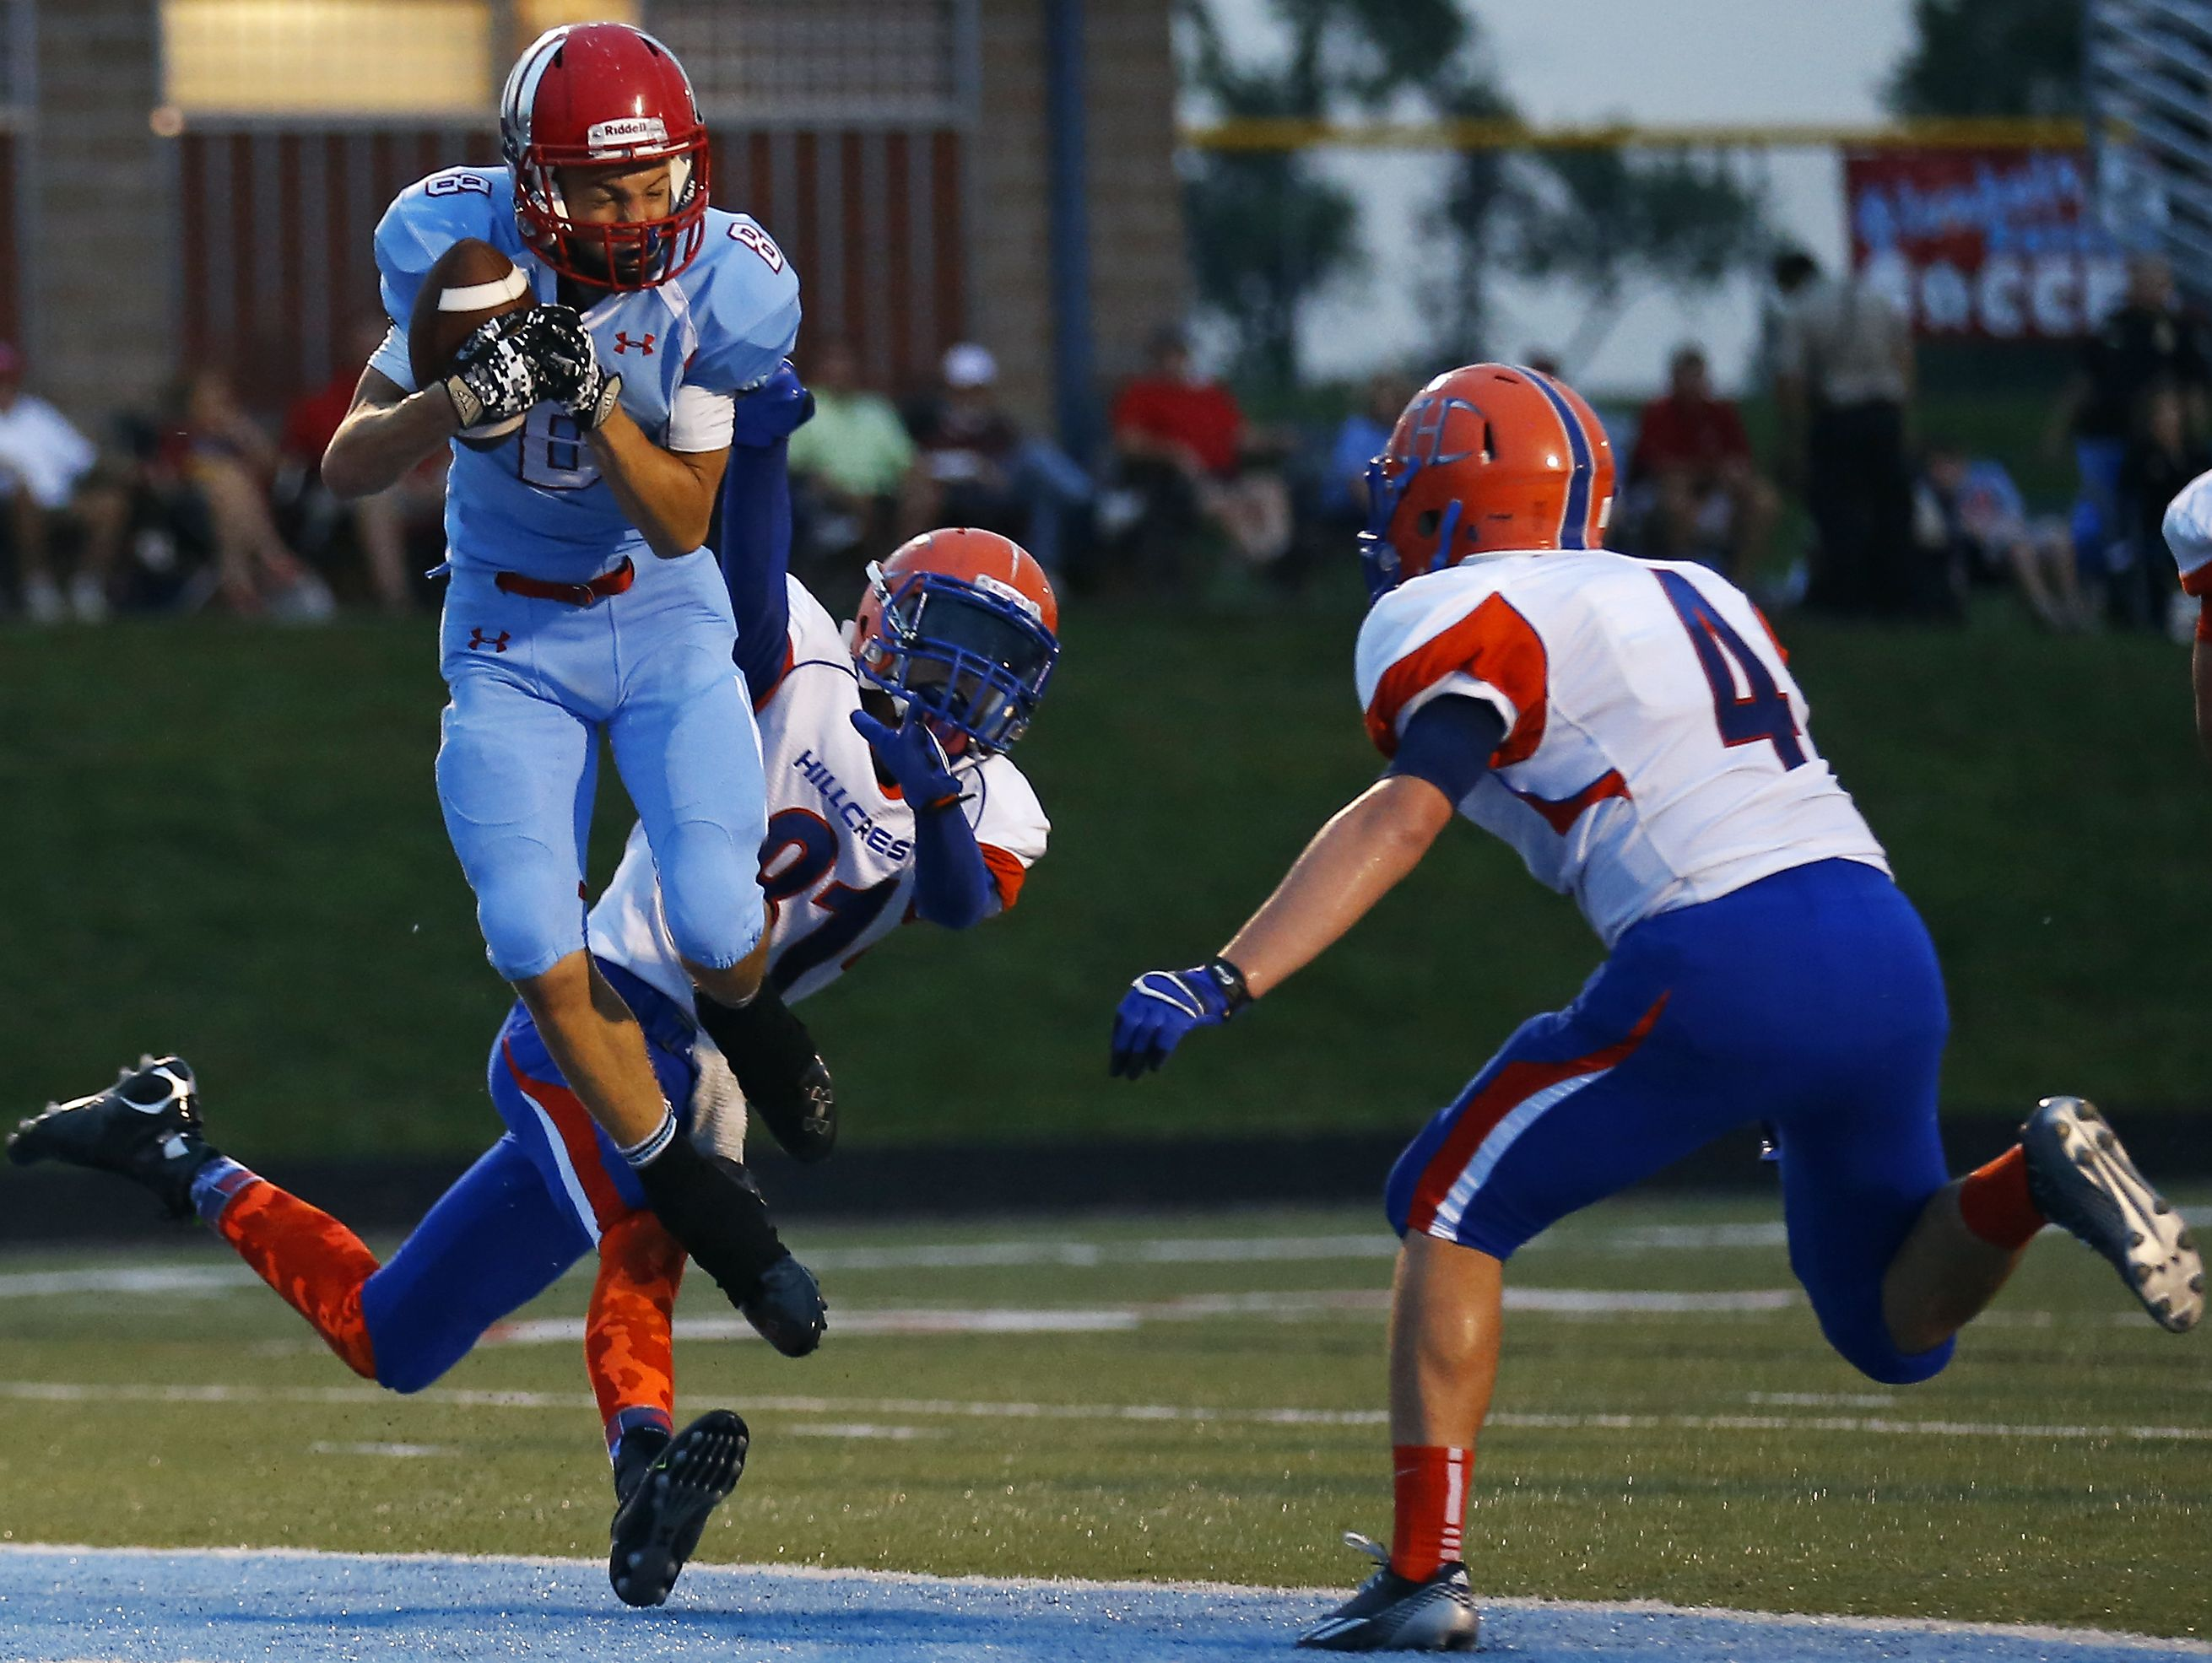 Glendale wide receiver Von Oeser (8) catches a touchdown pass between two Hillcrest defenders during the first quarter of a game at Lowe Stadium.